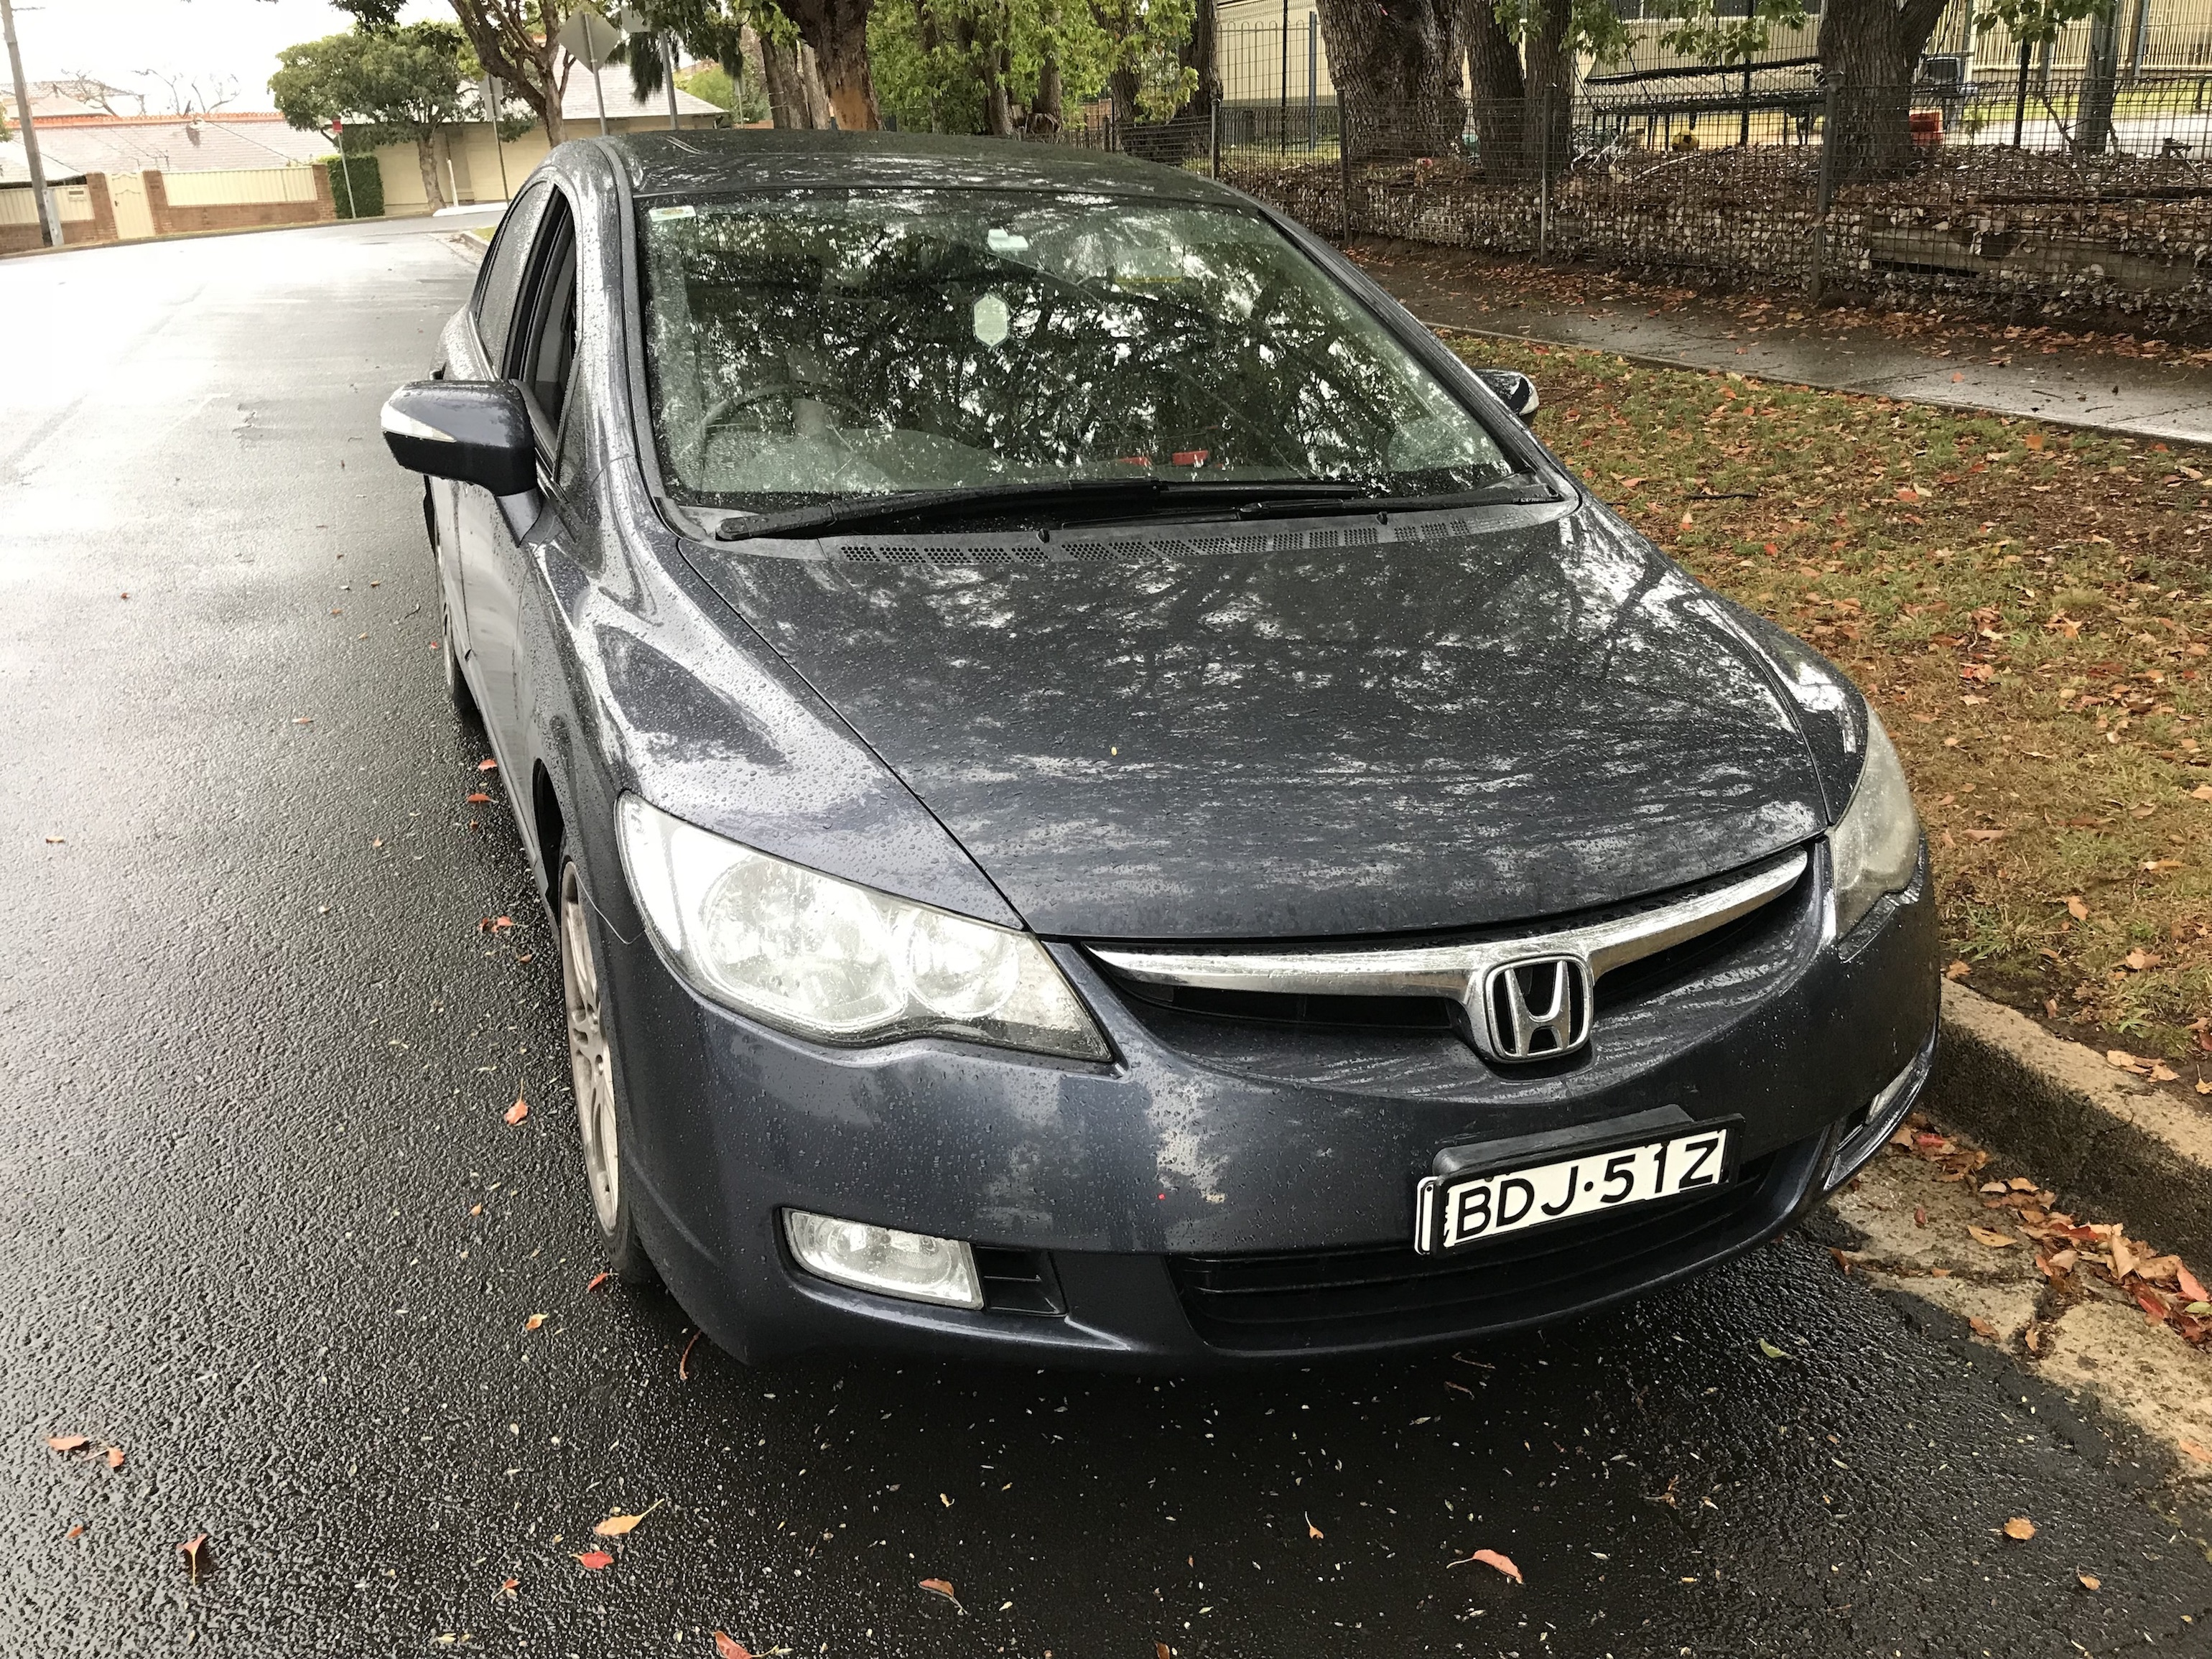 Picture of Haseef's 2007 Honda Civic